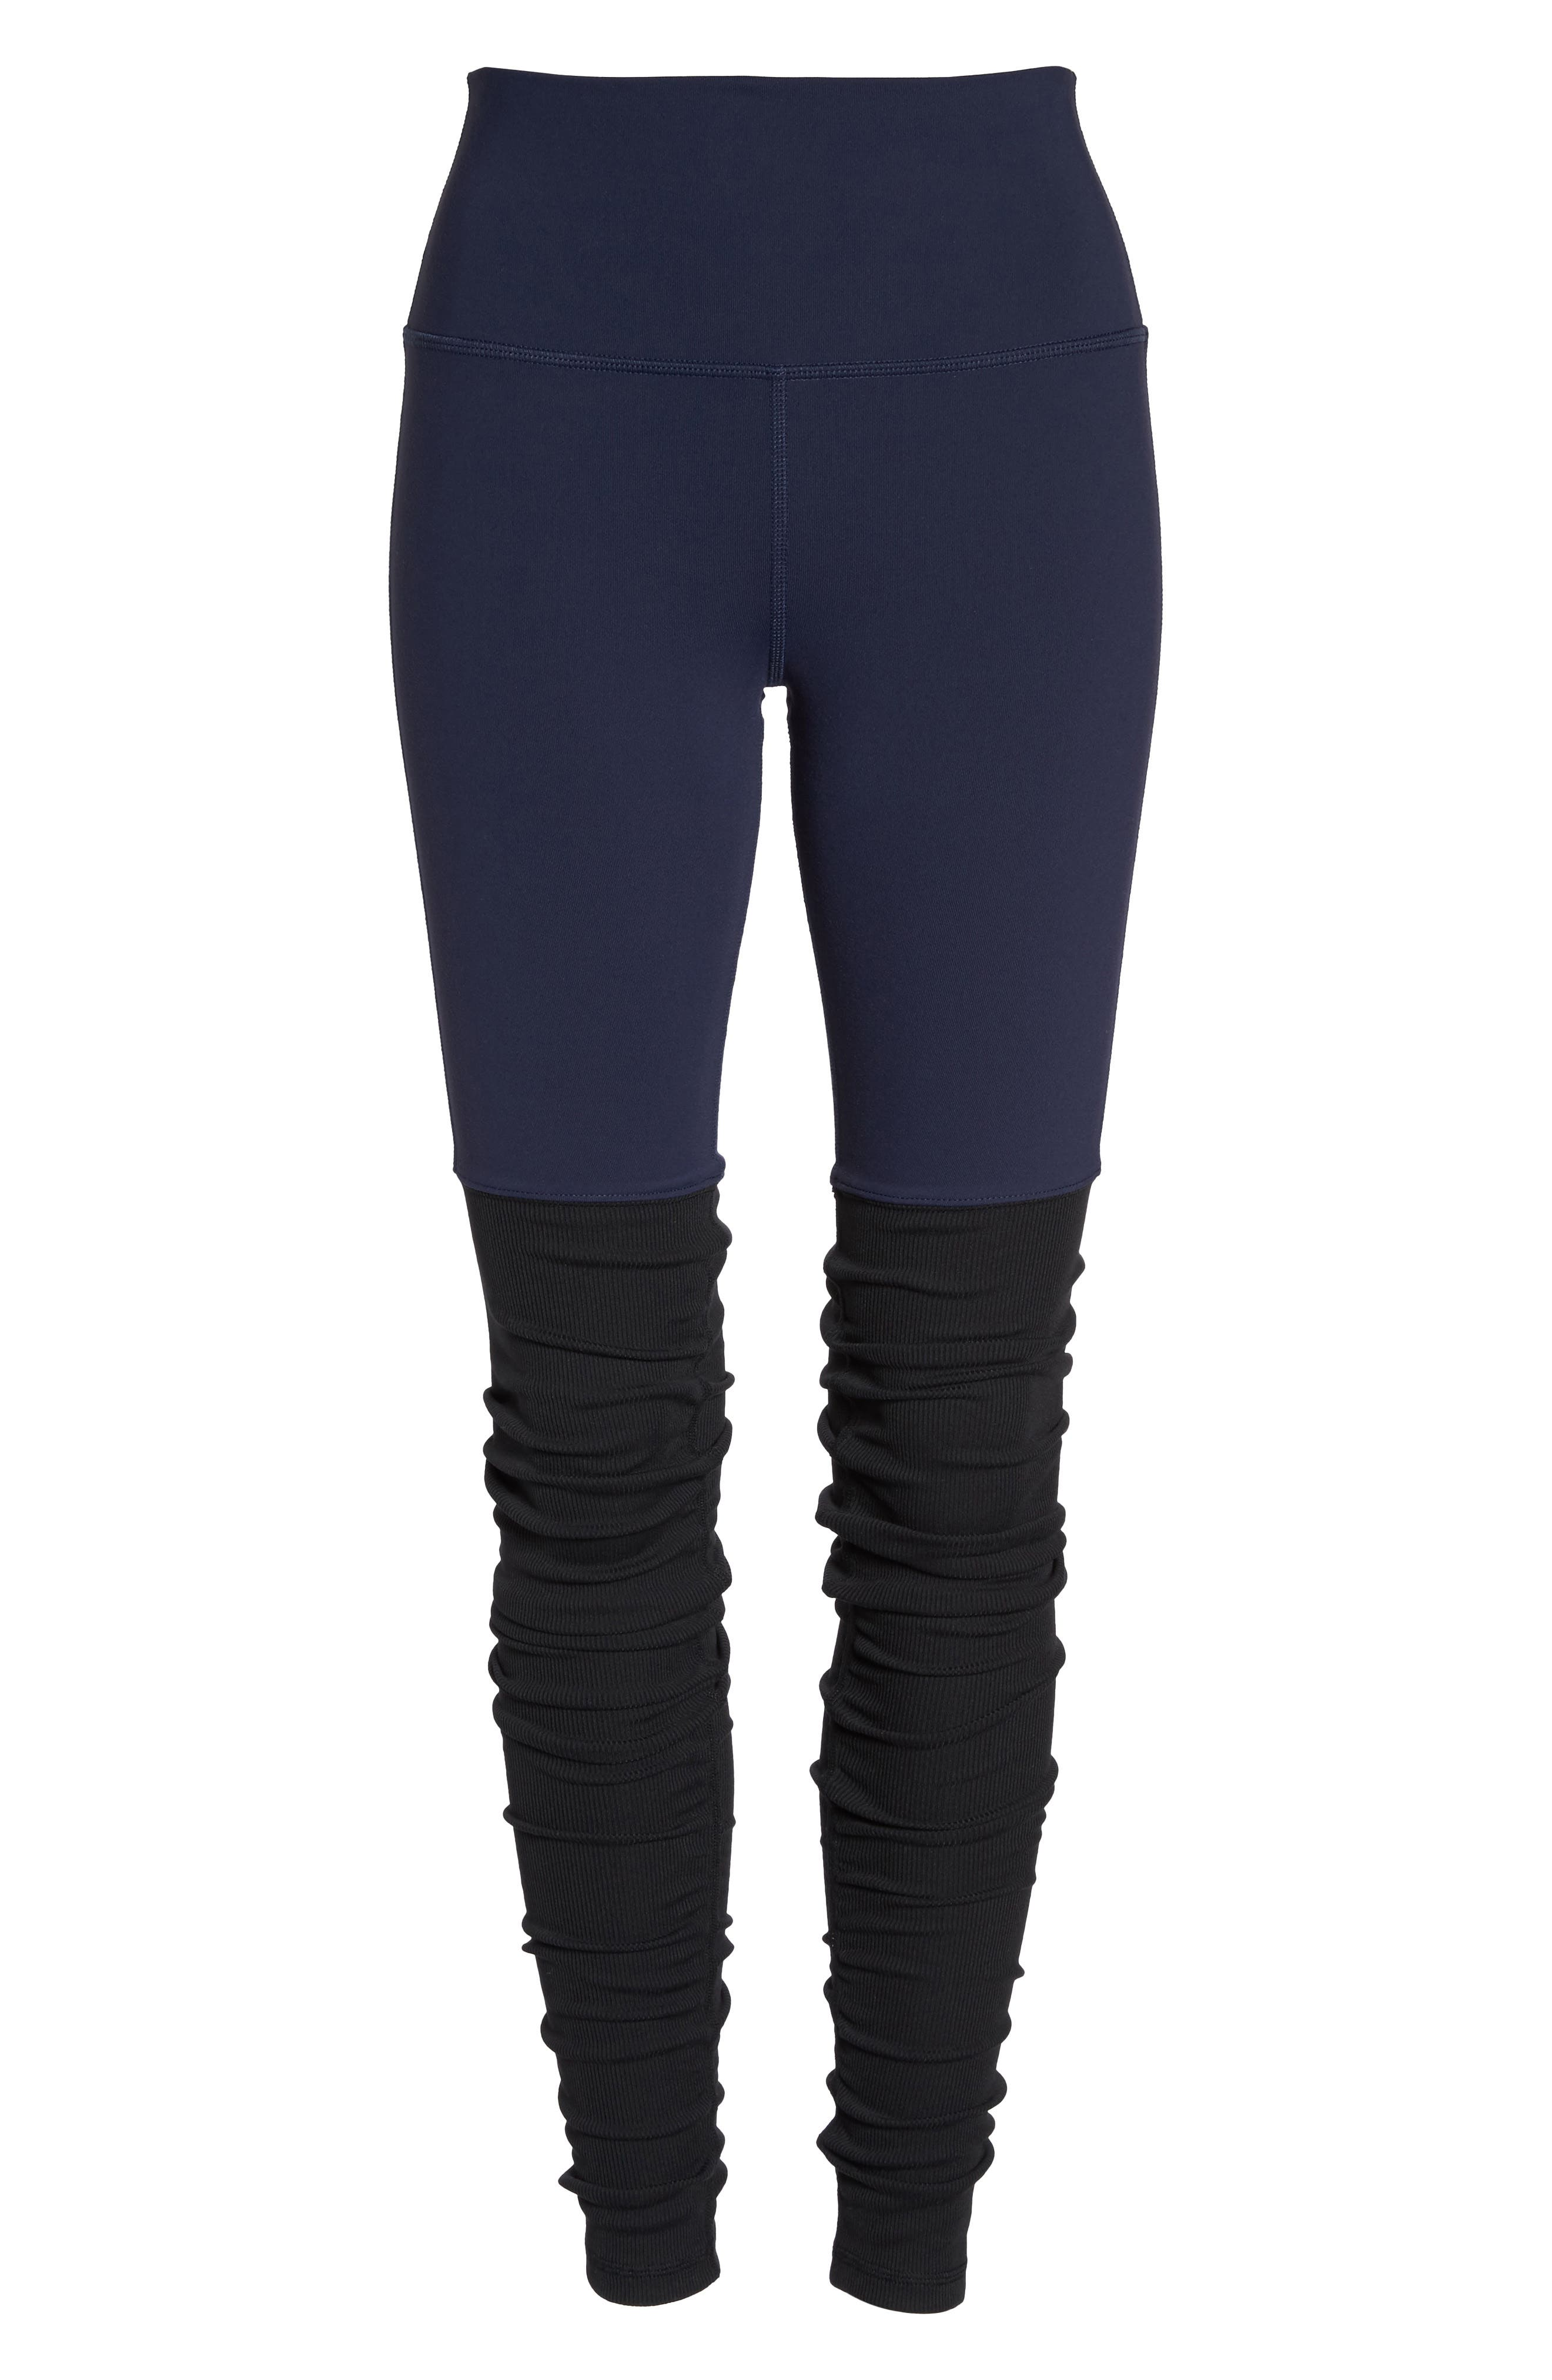 Goddess Ribbed Leggings,                             Alternate thumbnail 7, color,                             Rich Navy/ Black